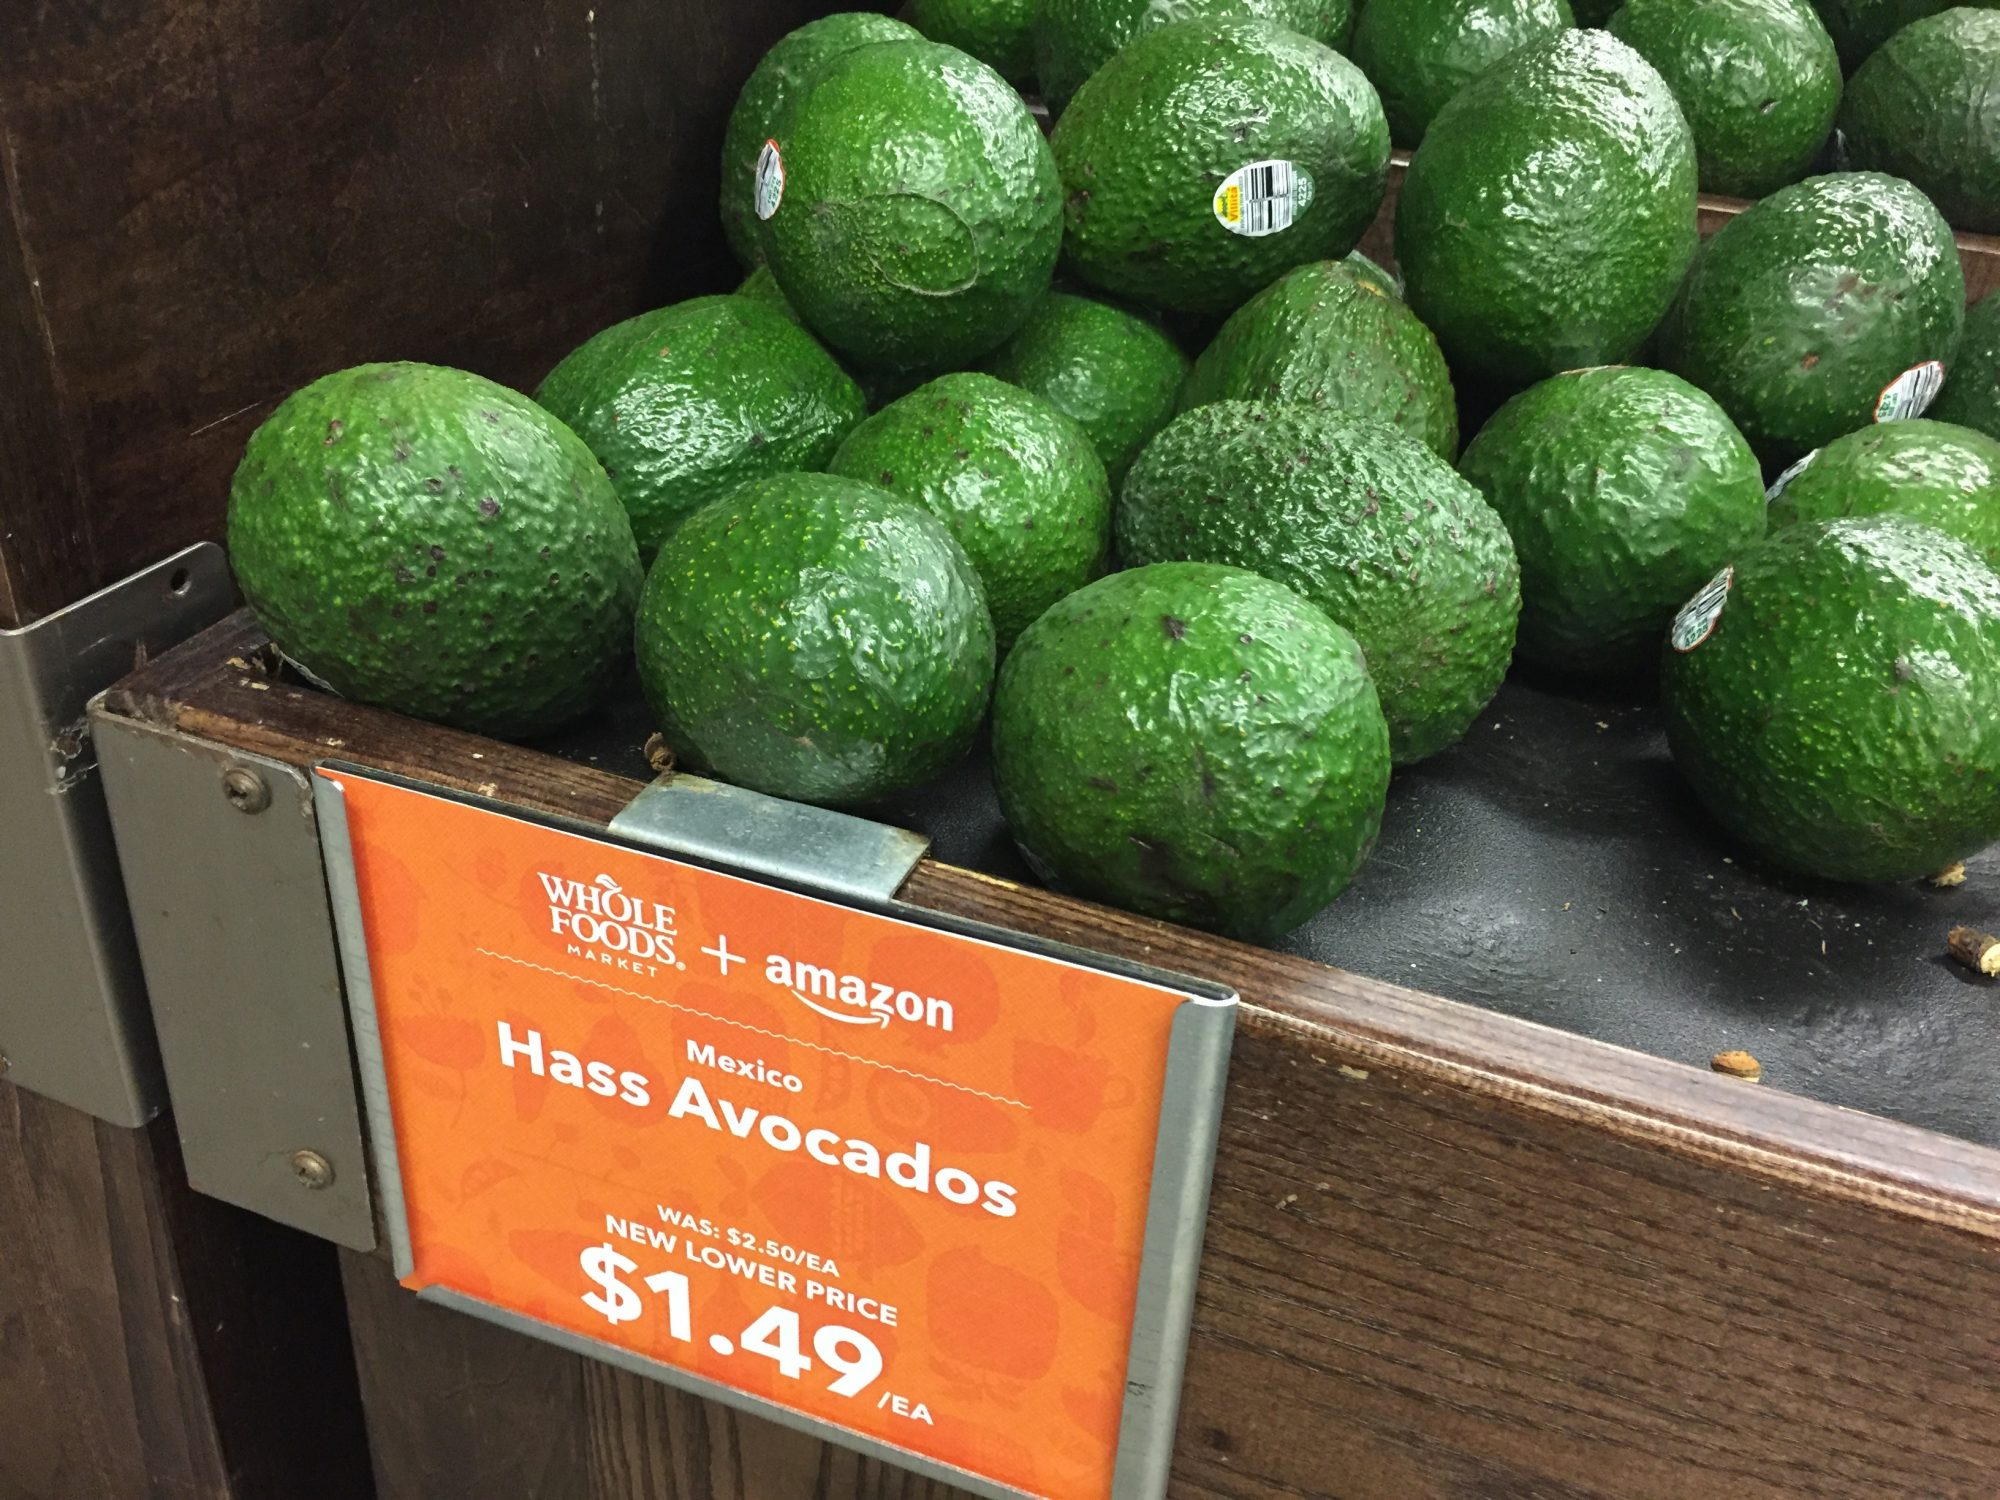 Lower priced avocados at a Whole Foods Market